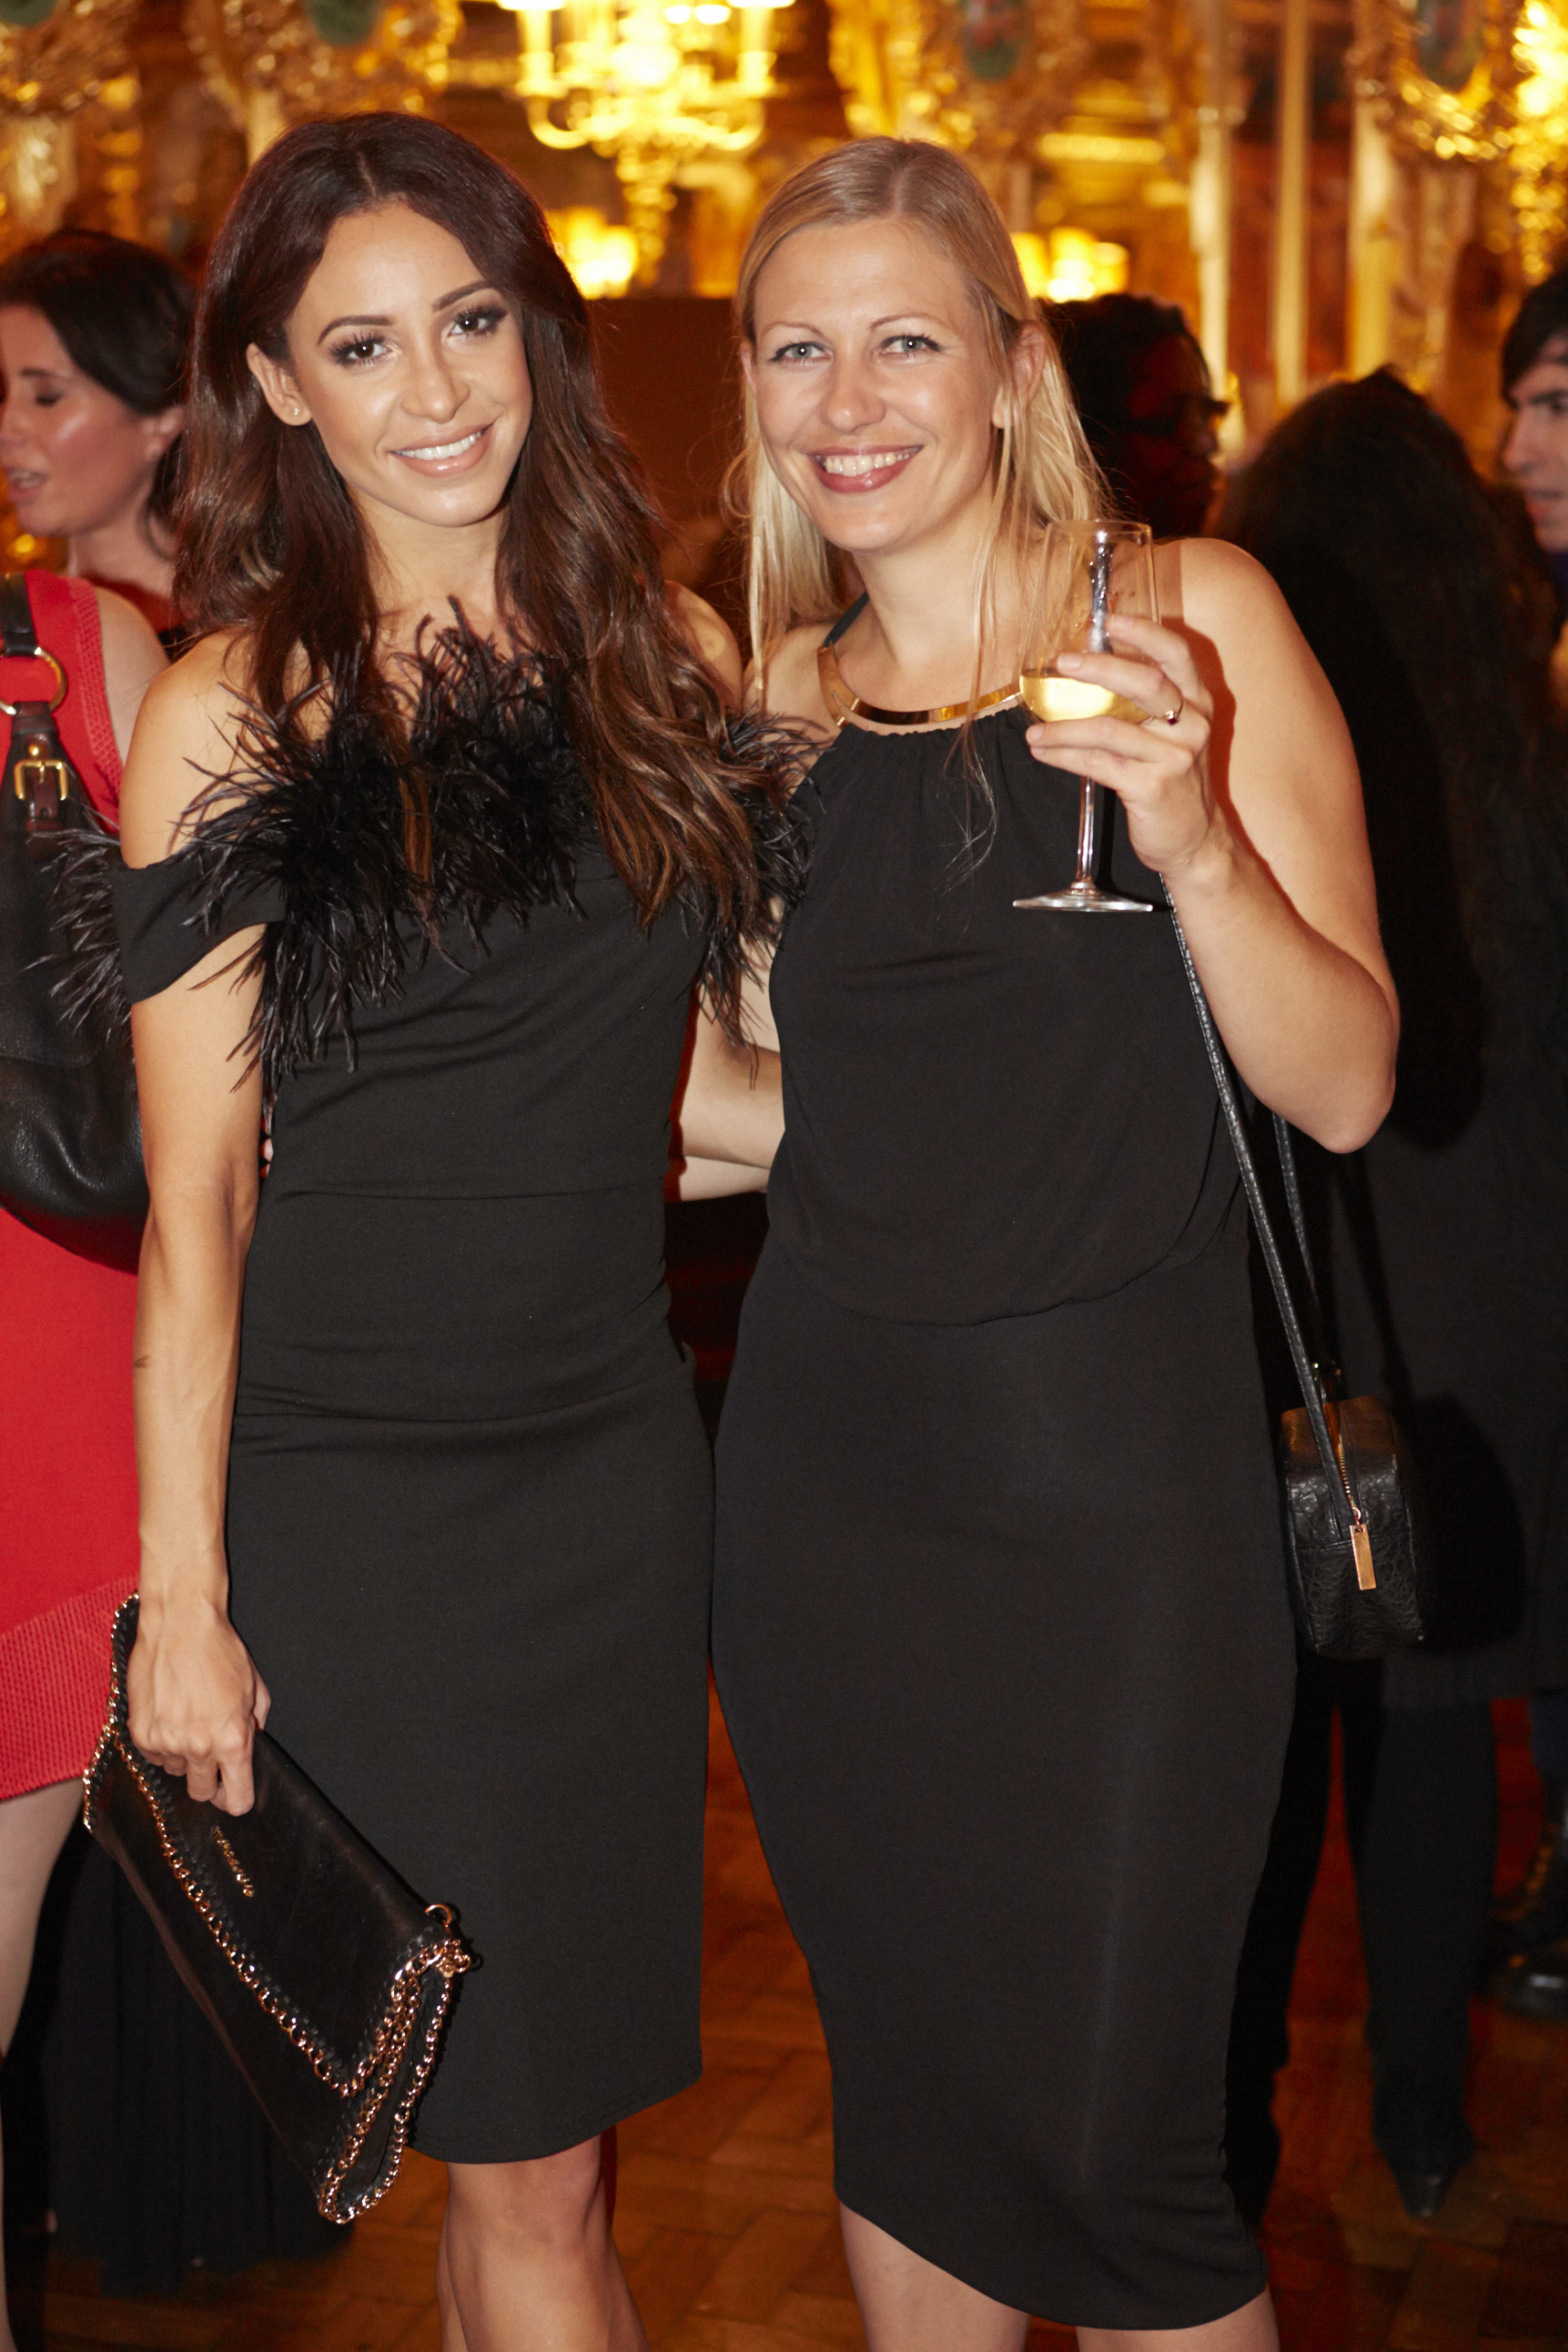 Danielle Peazer with Site Editor Nathalie Gibbins at The launch of LittleBlackDress.co.uk at Hotel Cafe Royal, Wednesday 8th October